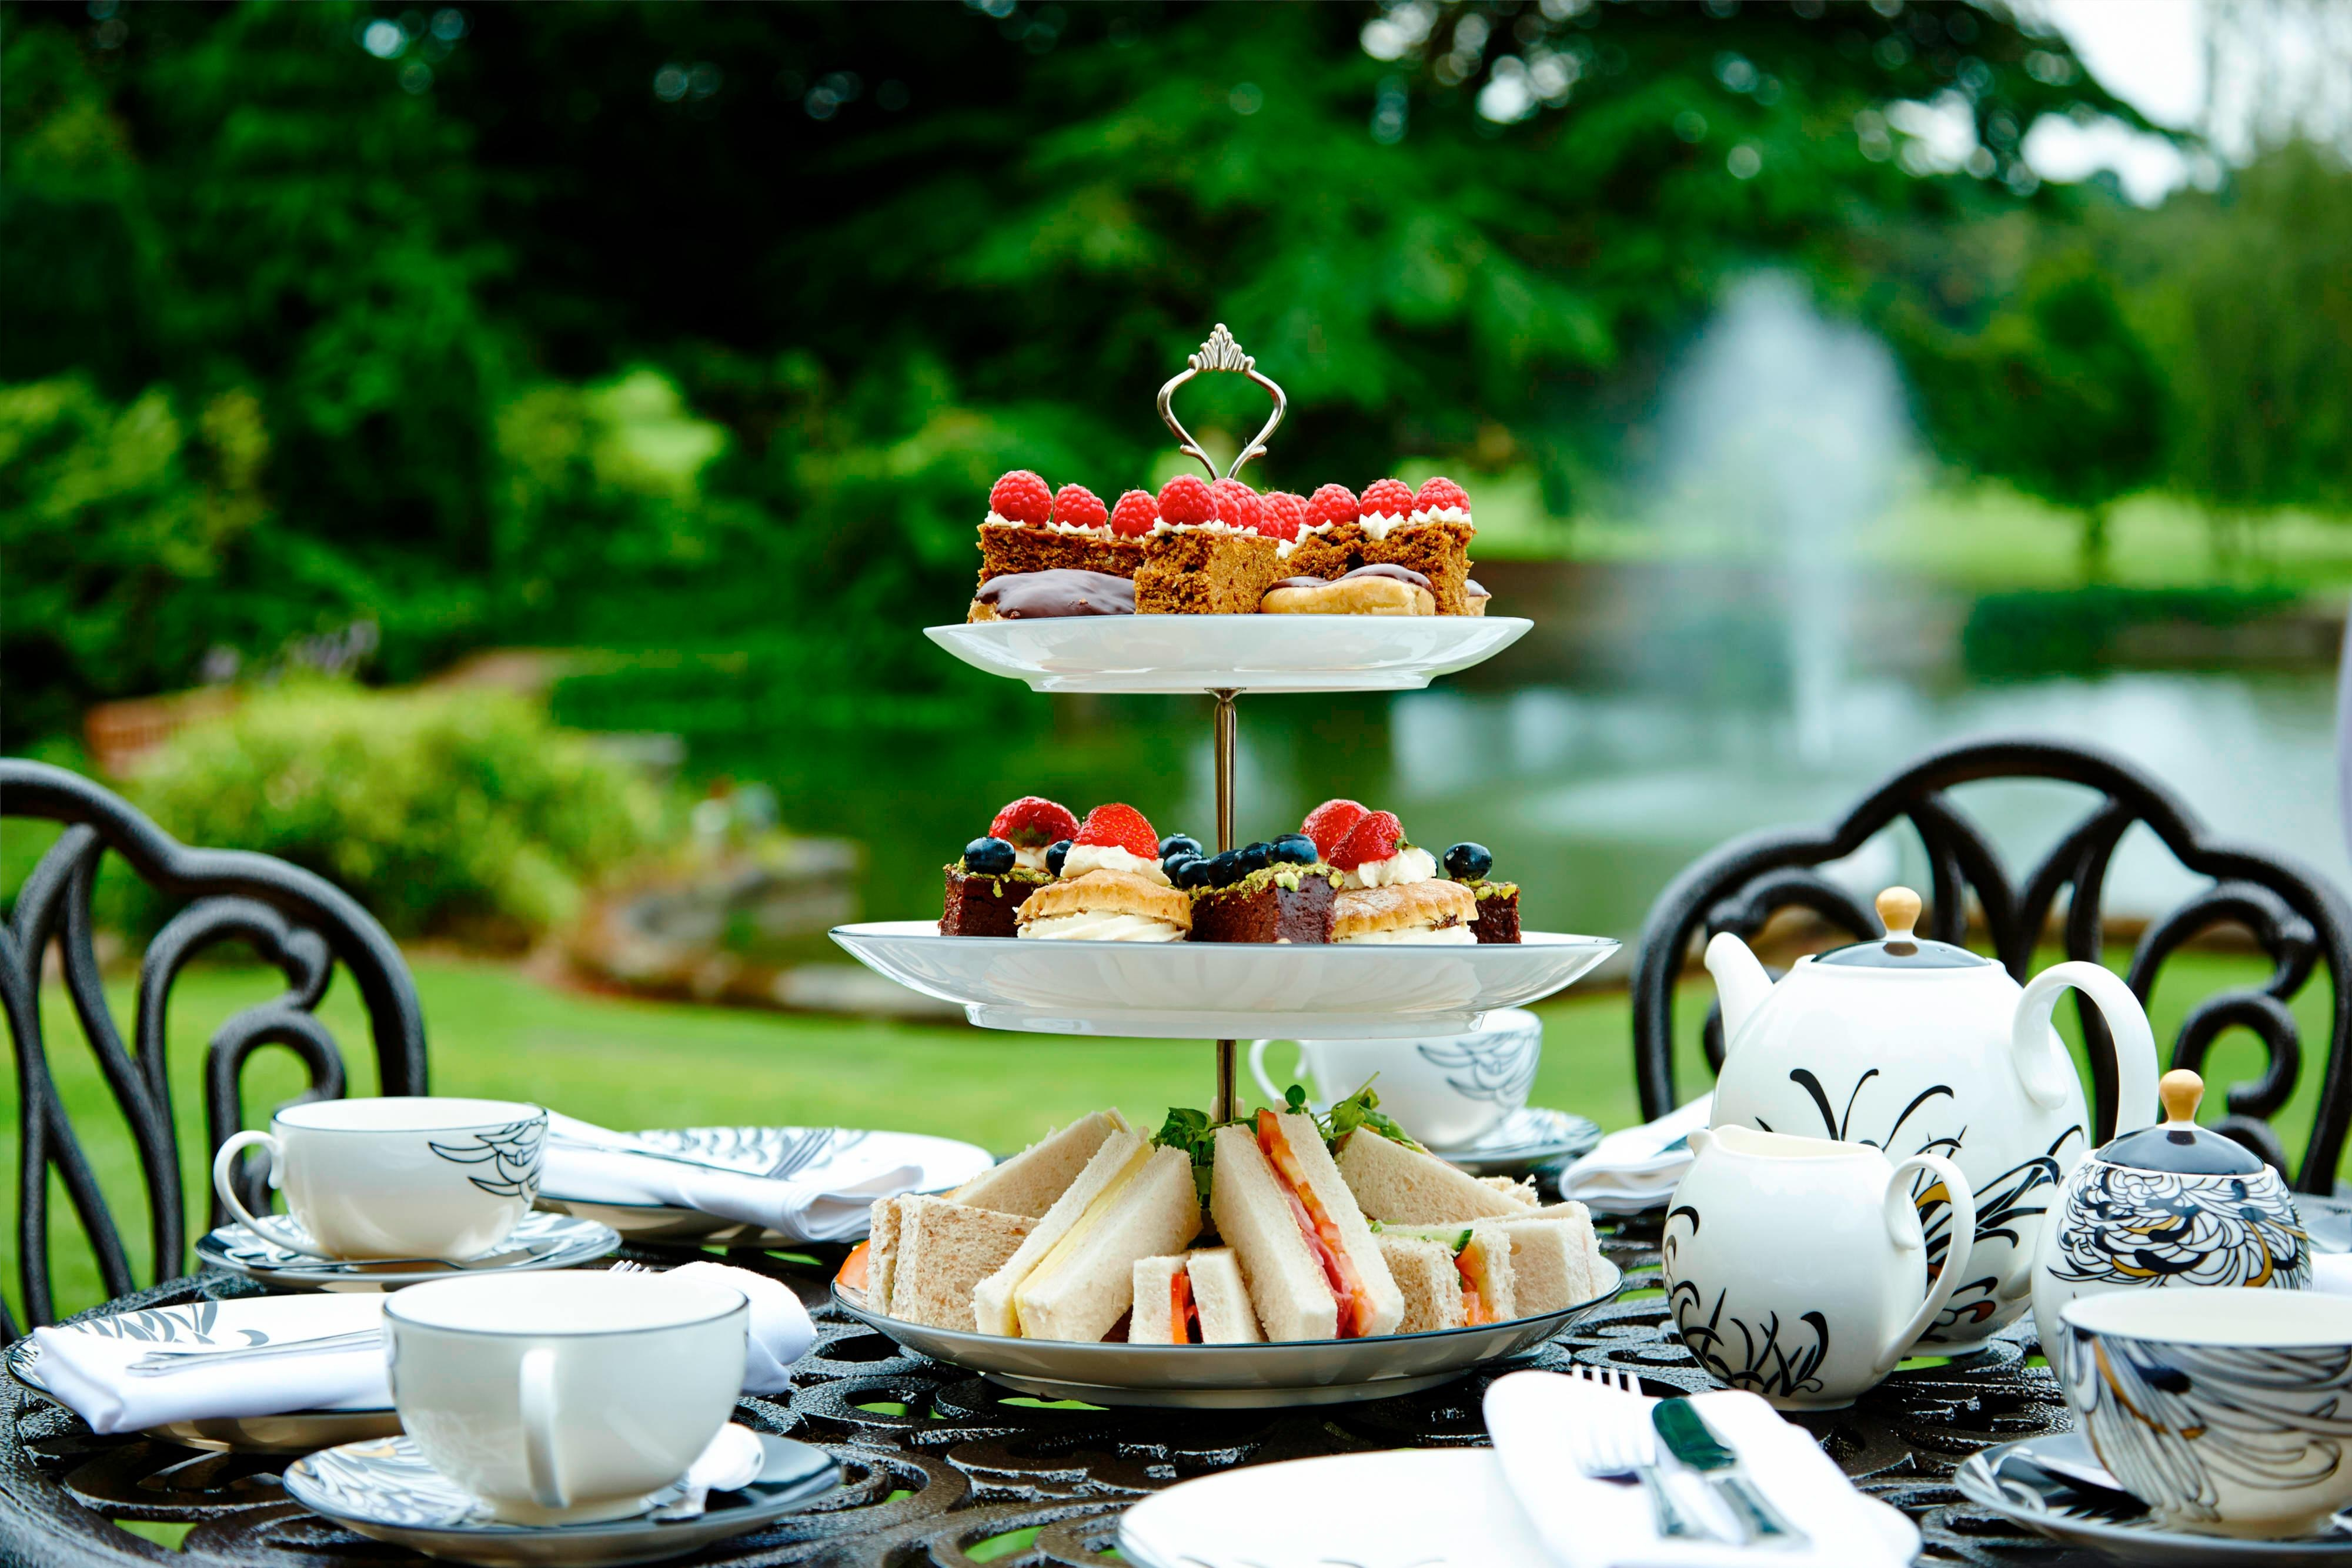 Afternoon tea on the patio at Breadsall Priory